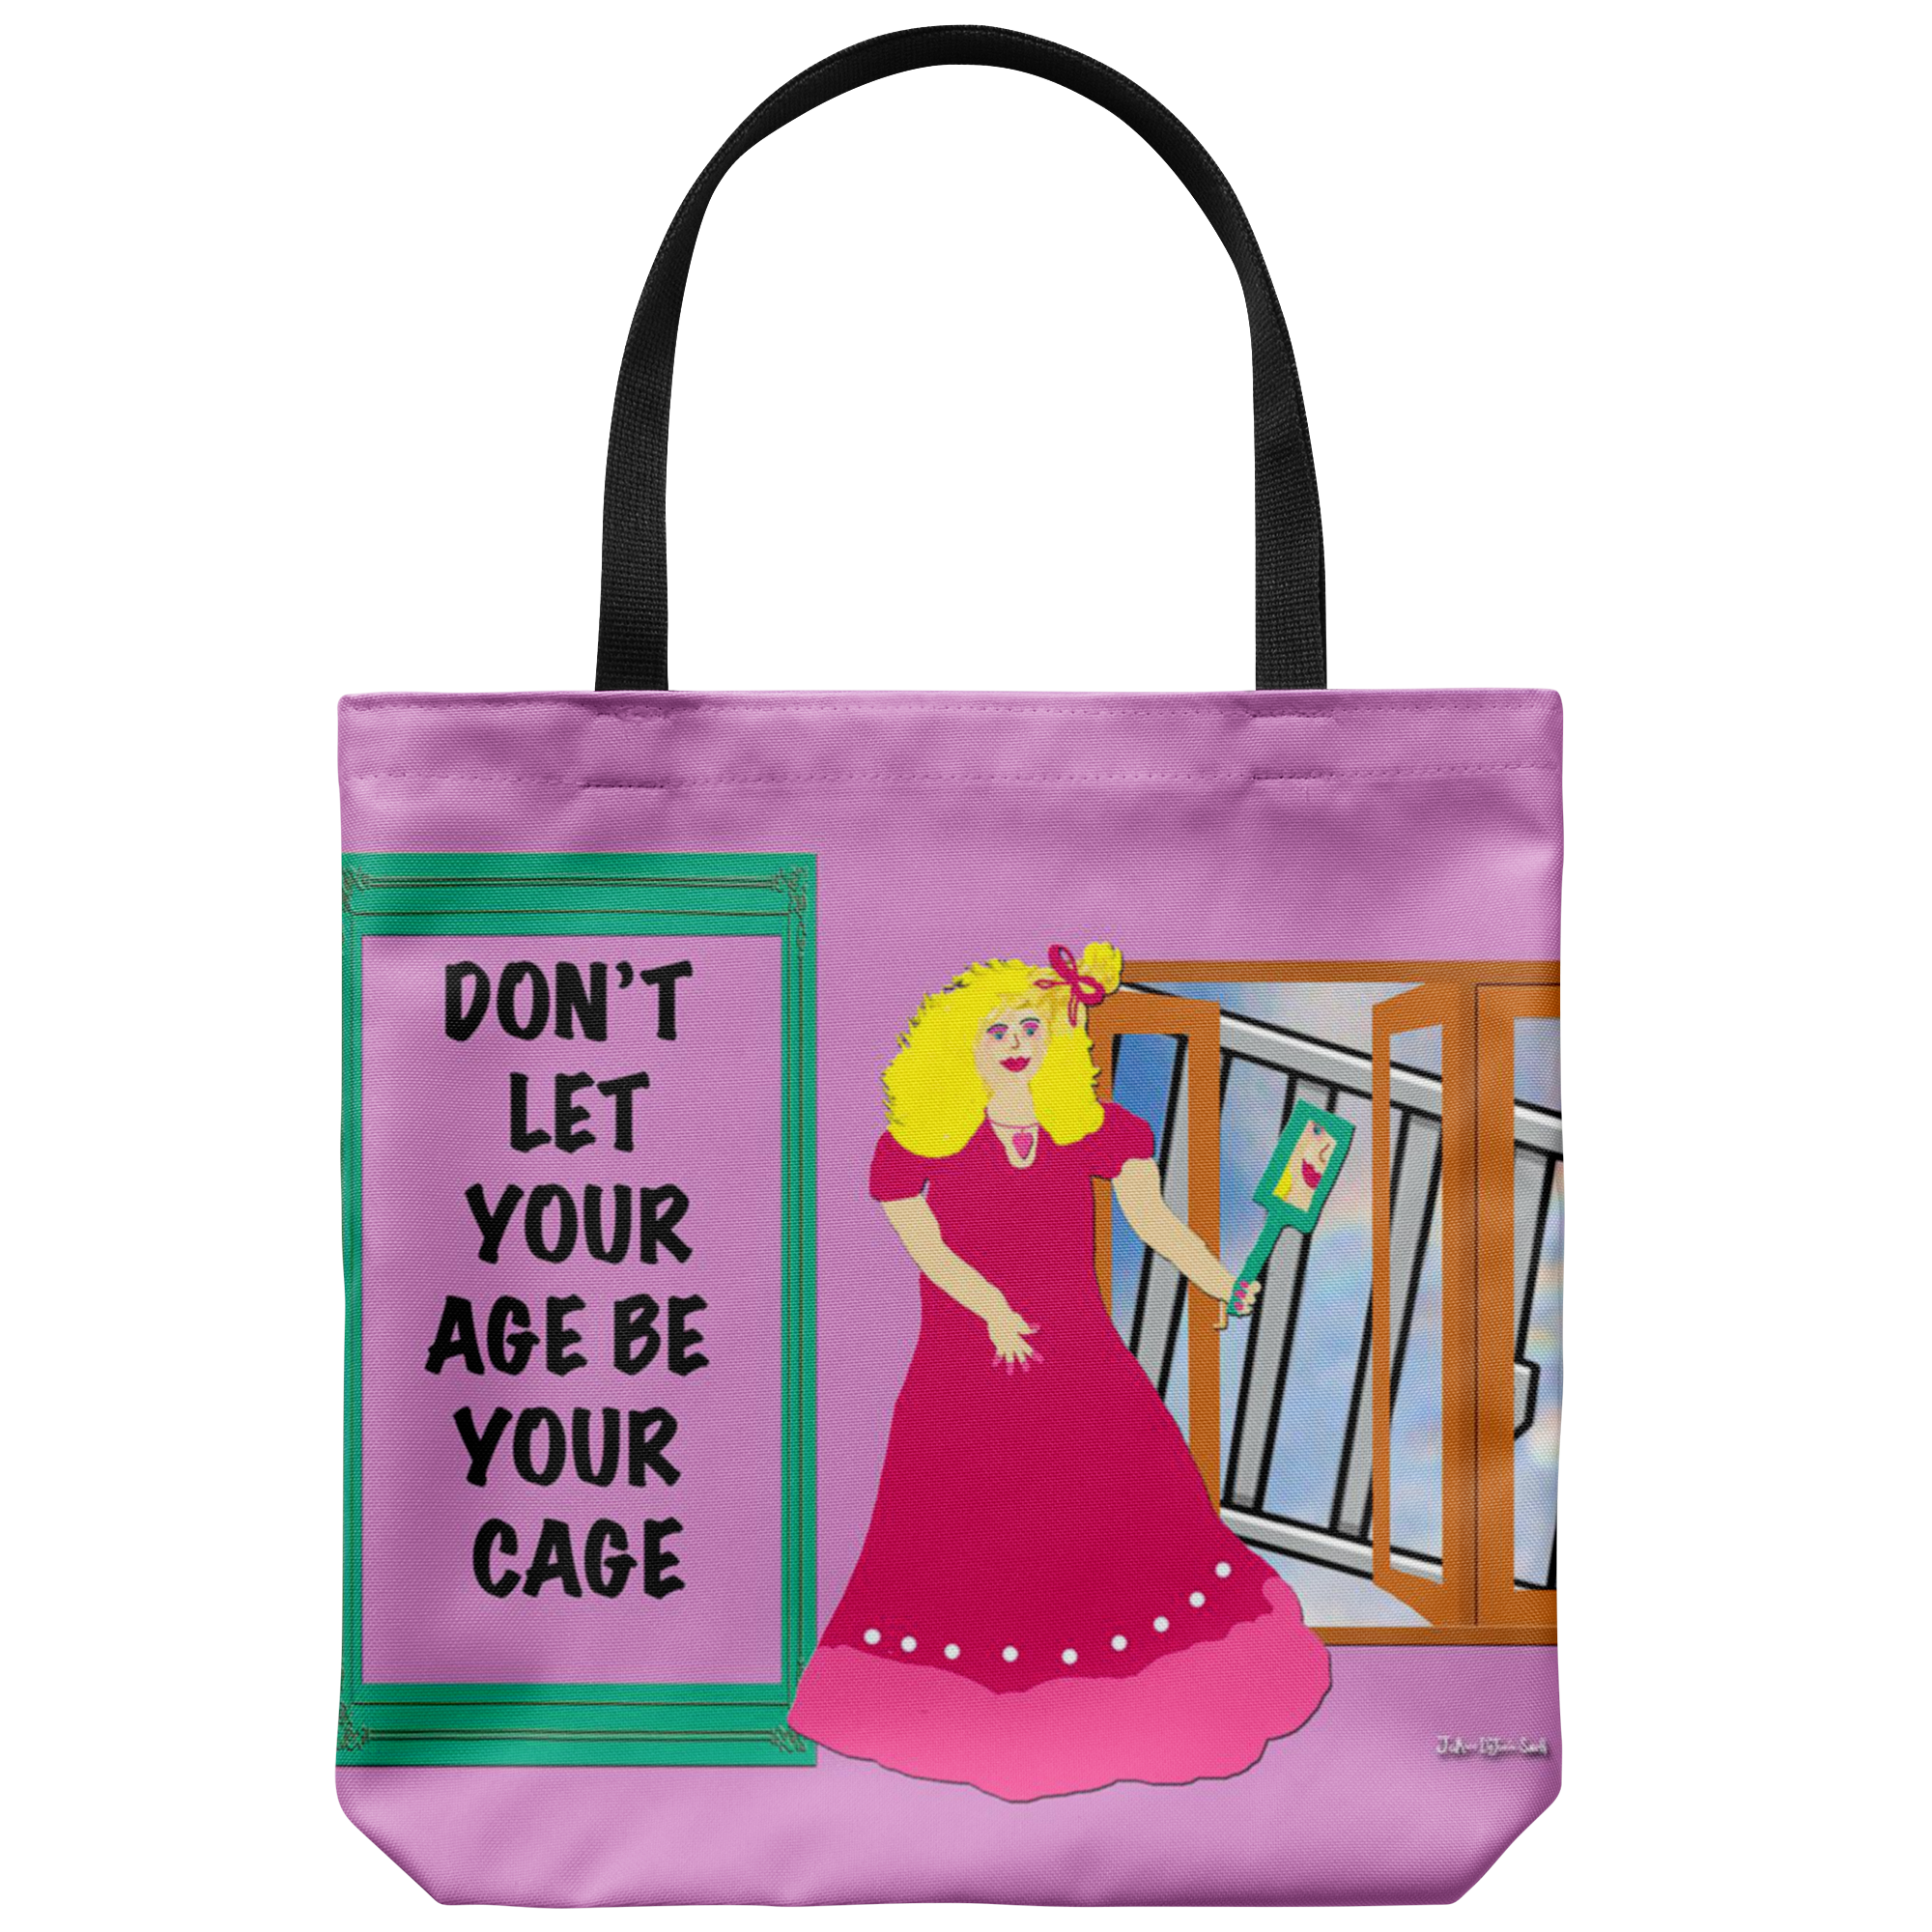 64377a0392 Dont let your age be your cage tote bag thealphabuds png 2000x2000 Tote cage